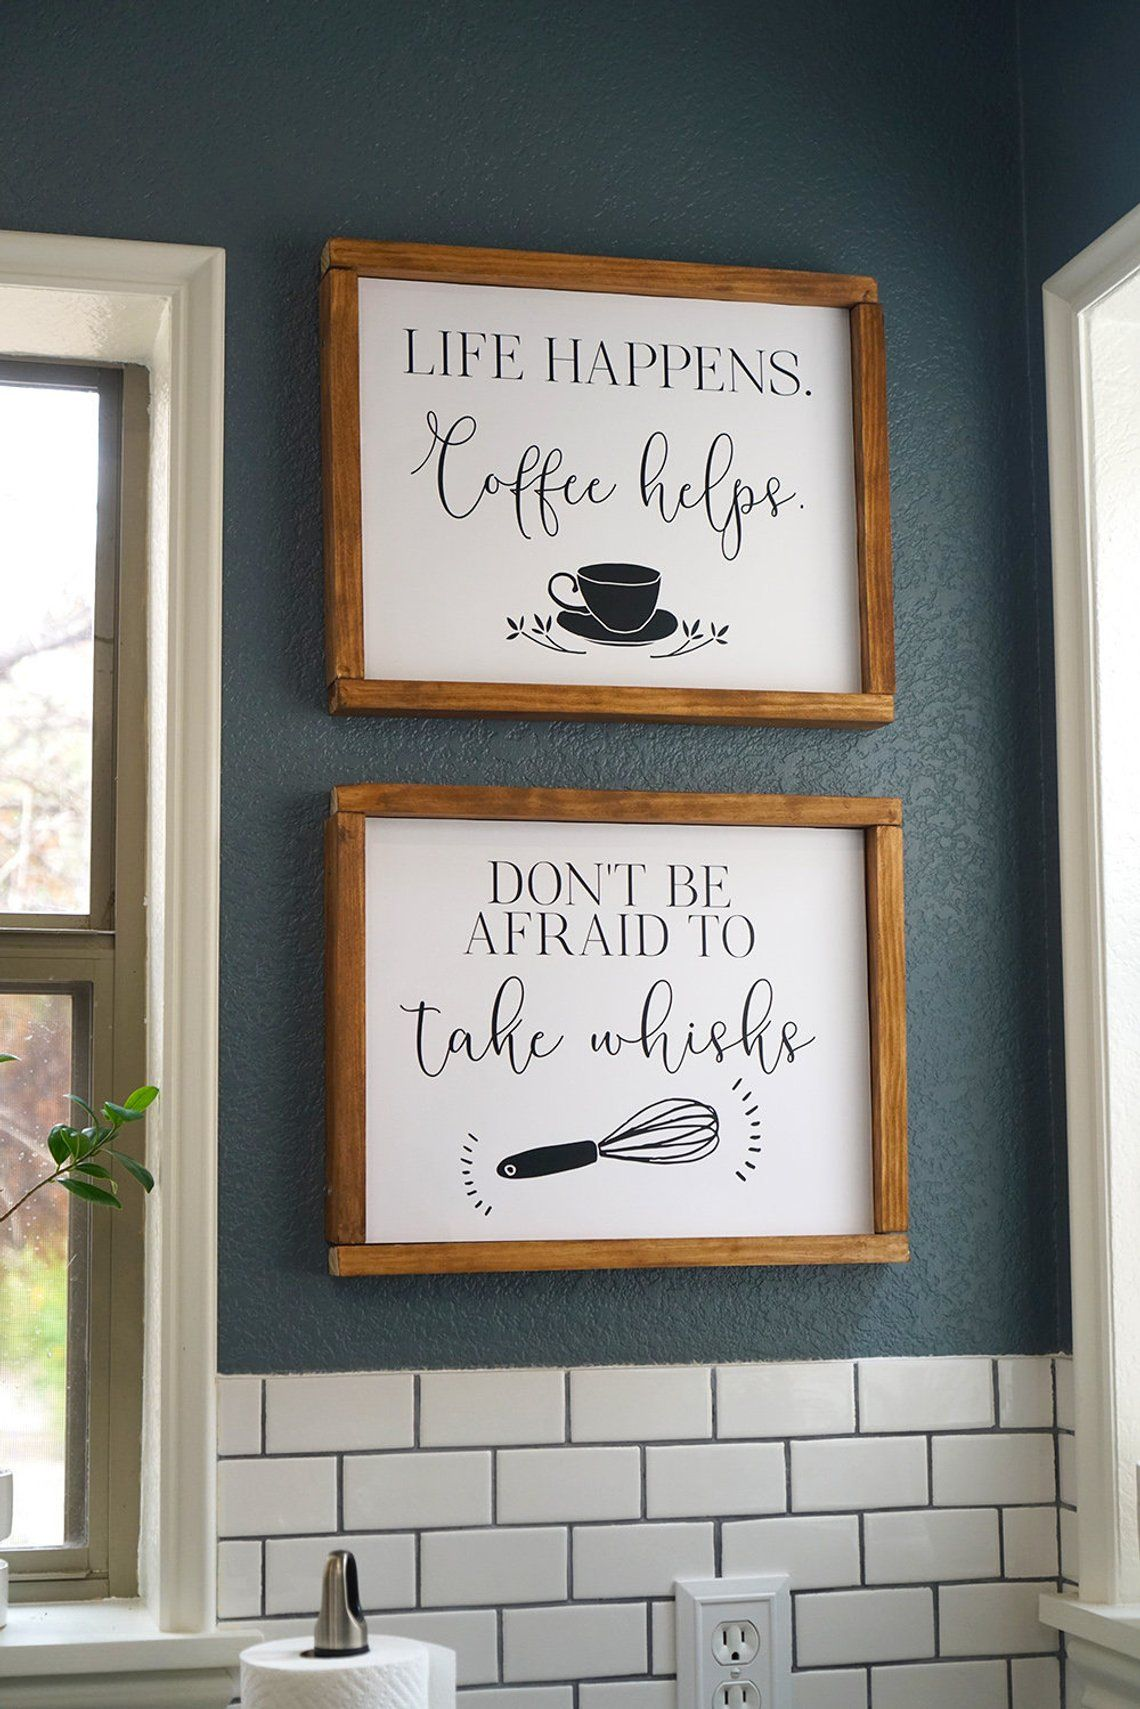 Funny Kitchen Wall Art Printable Life Happens Coffee Helps Don T Be Afraid To Take Whisks Kitchen Cricut Ideas In 2021 Kitchen Wall Art Printables Kitchen Wall Art Kitchen Decor Signs